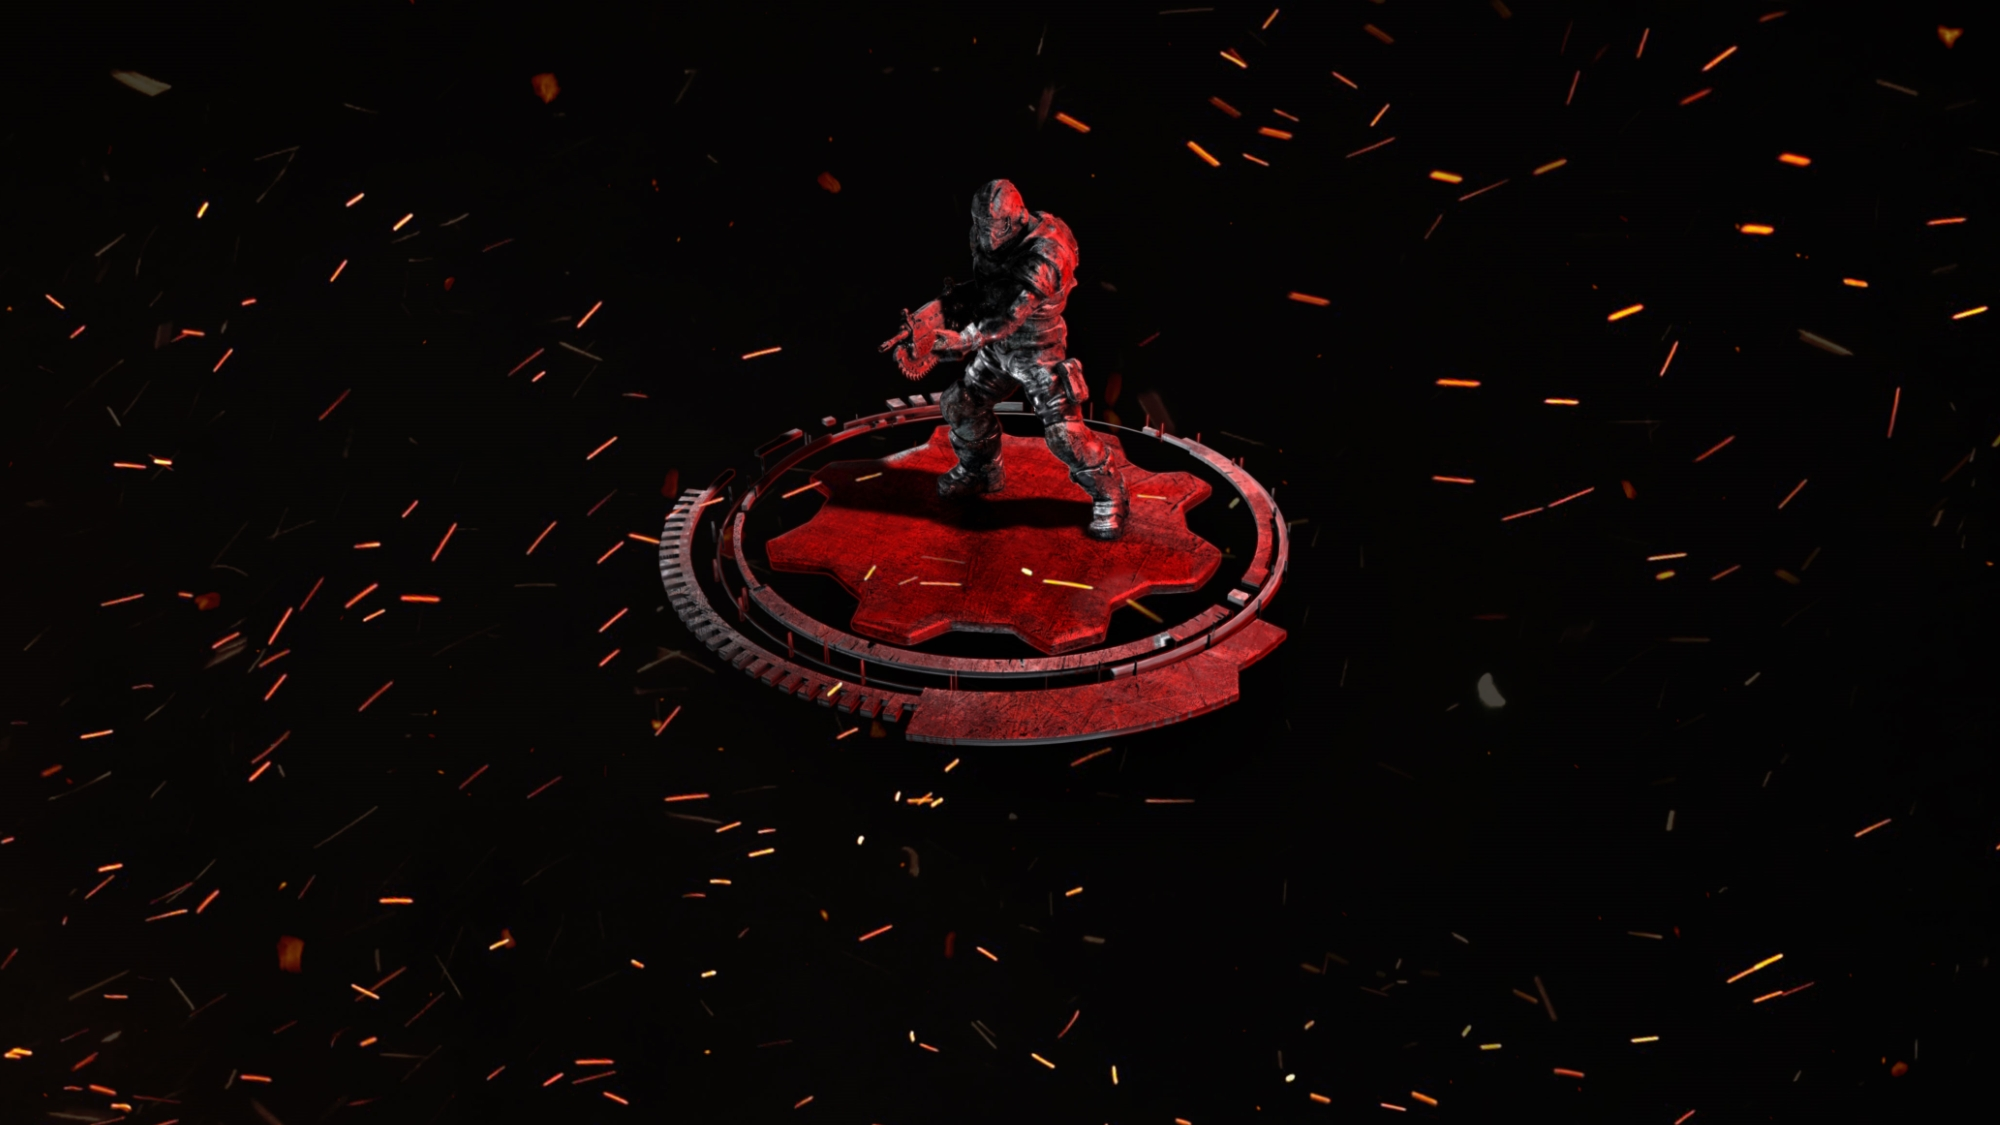 Isolated red-highlighted COG Soldier on a red cog surrounded by sparks